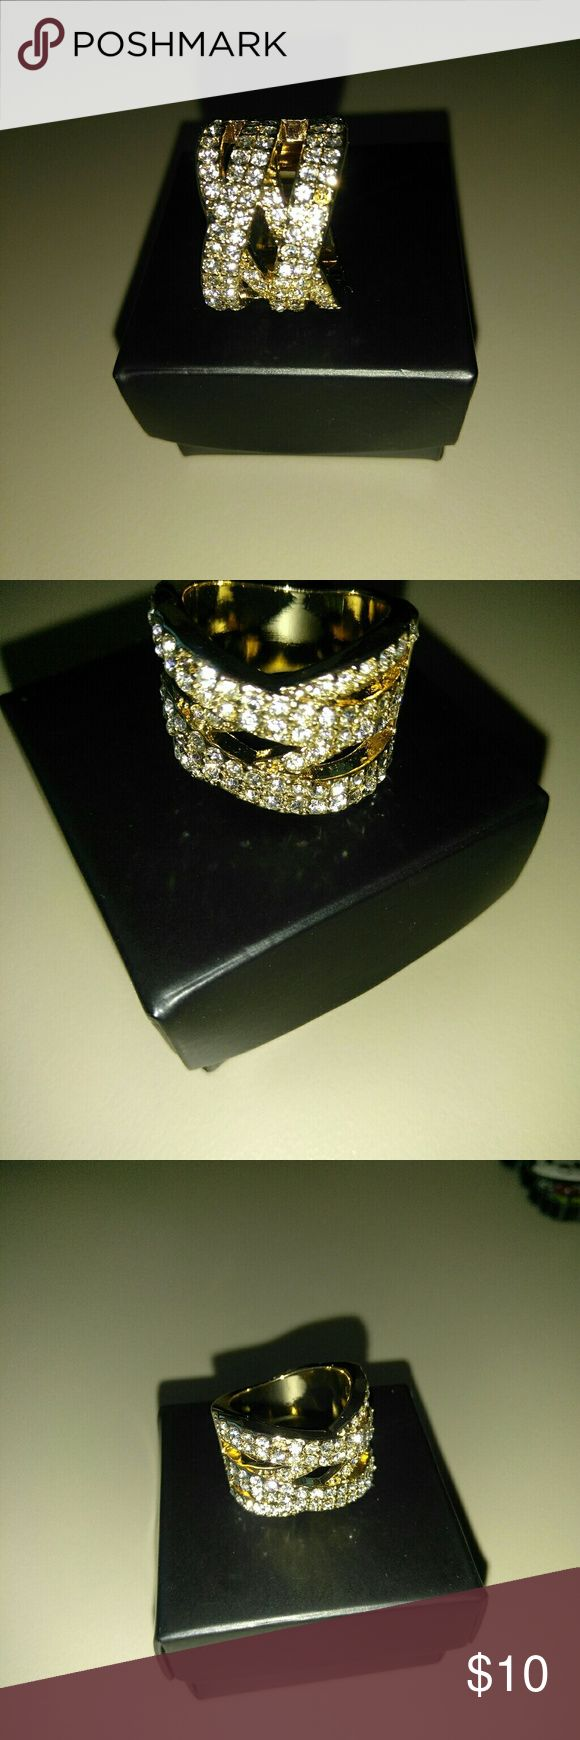 Avon ring size 6 Gold metal ring with Crystal  one small stone is missing as show in picture # 1 avon Jewelry Rings